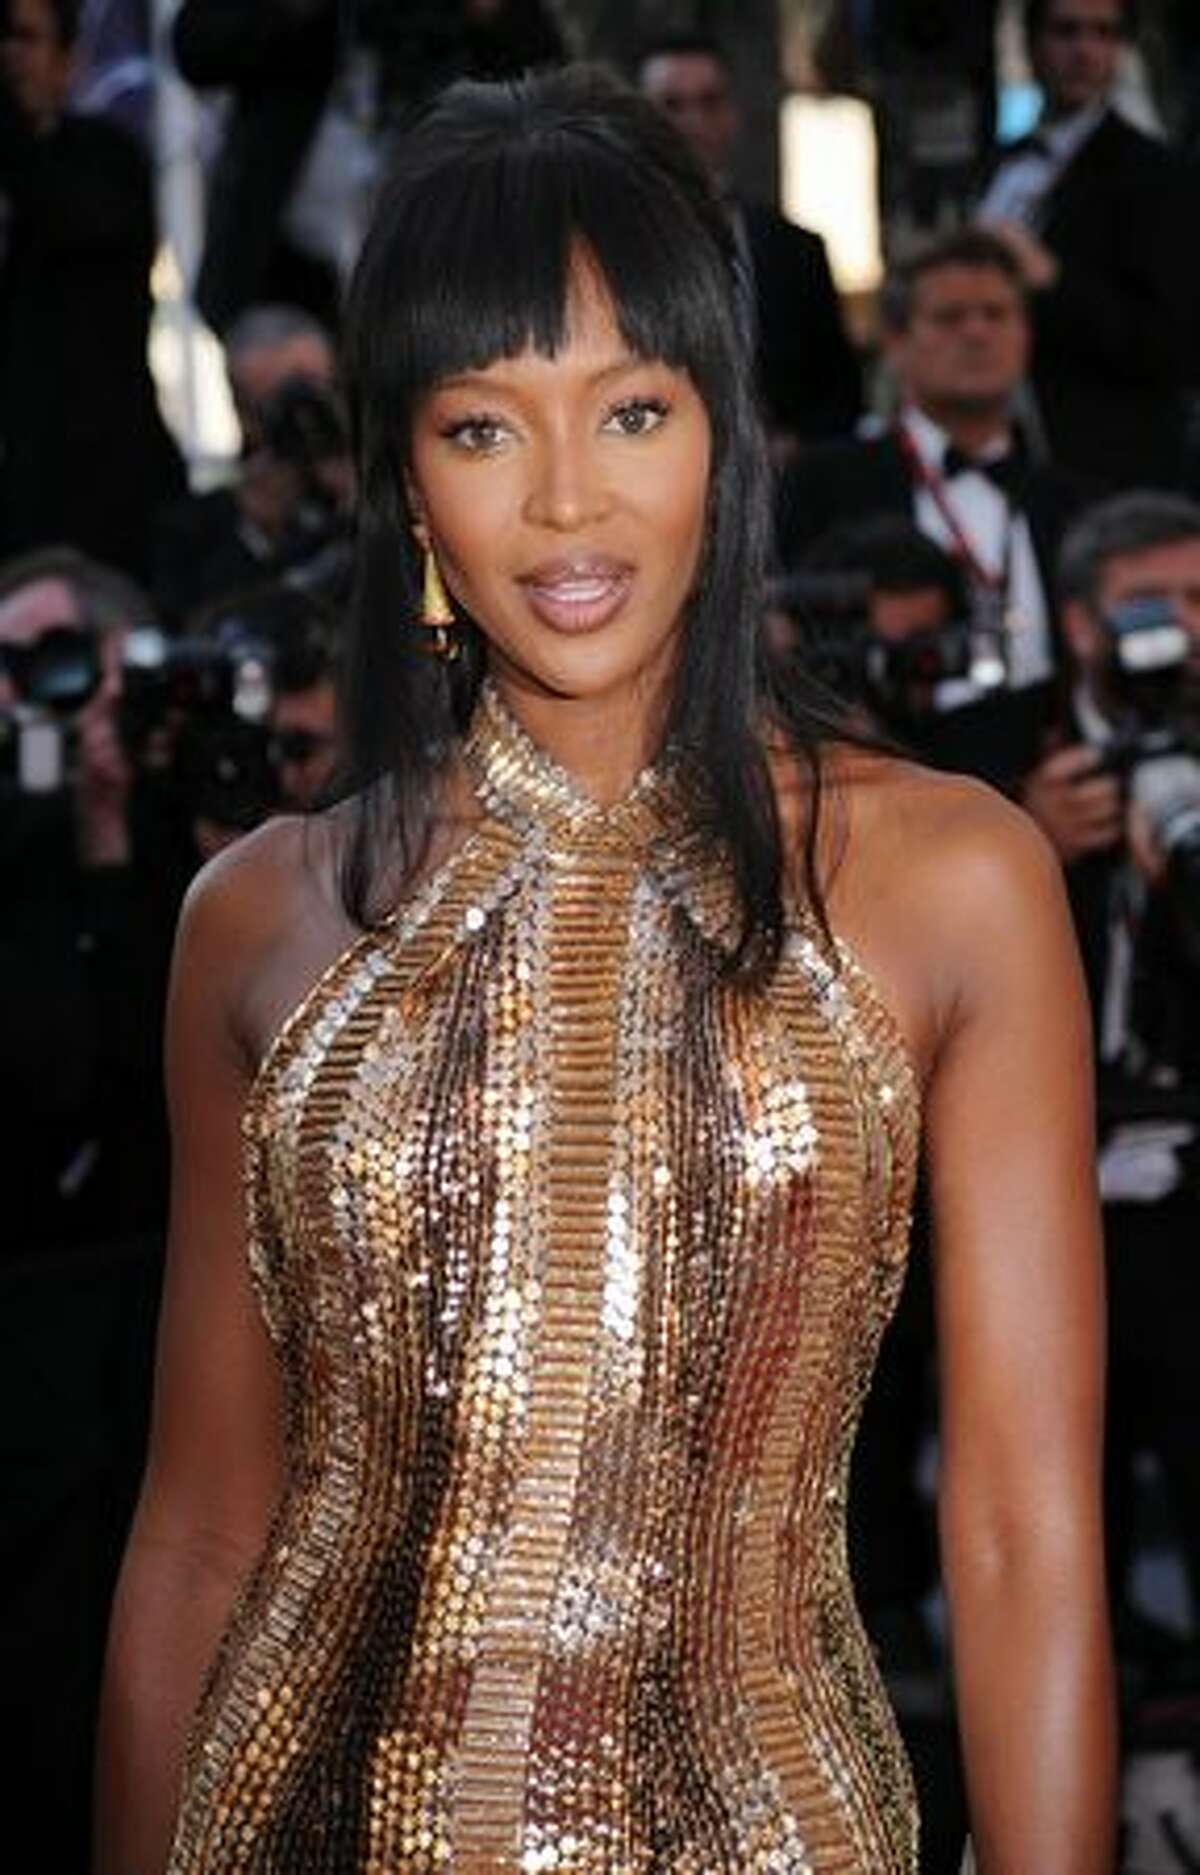 """Model Naomi Campbell attends the """"Biutiful"""" premiere at the Palais des Festivals during the 63rd Annual Cannes Film Festival."""